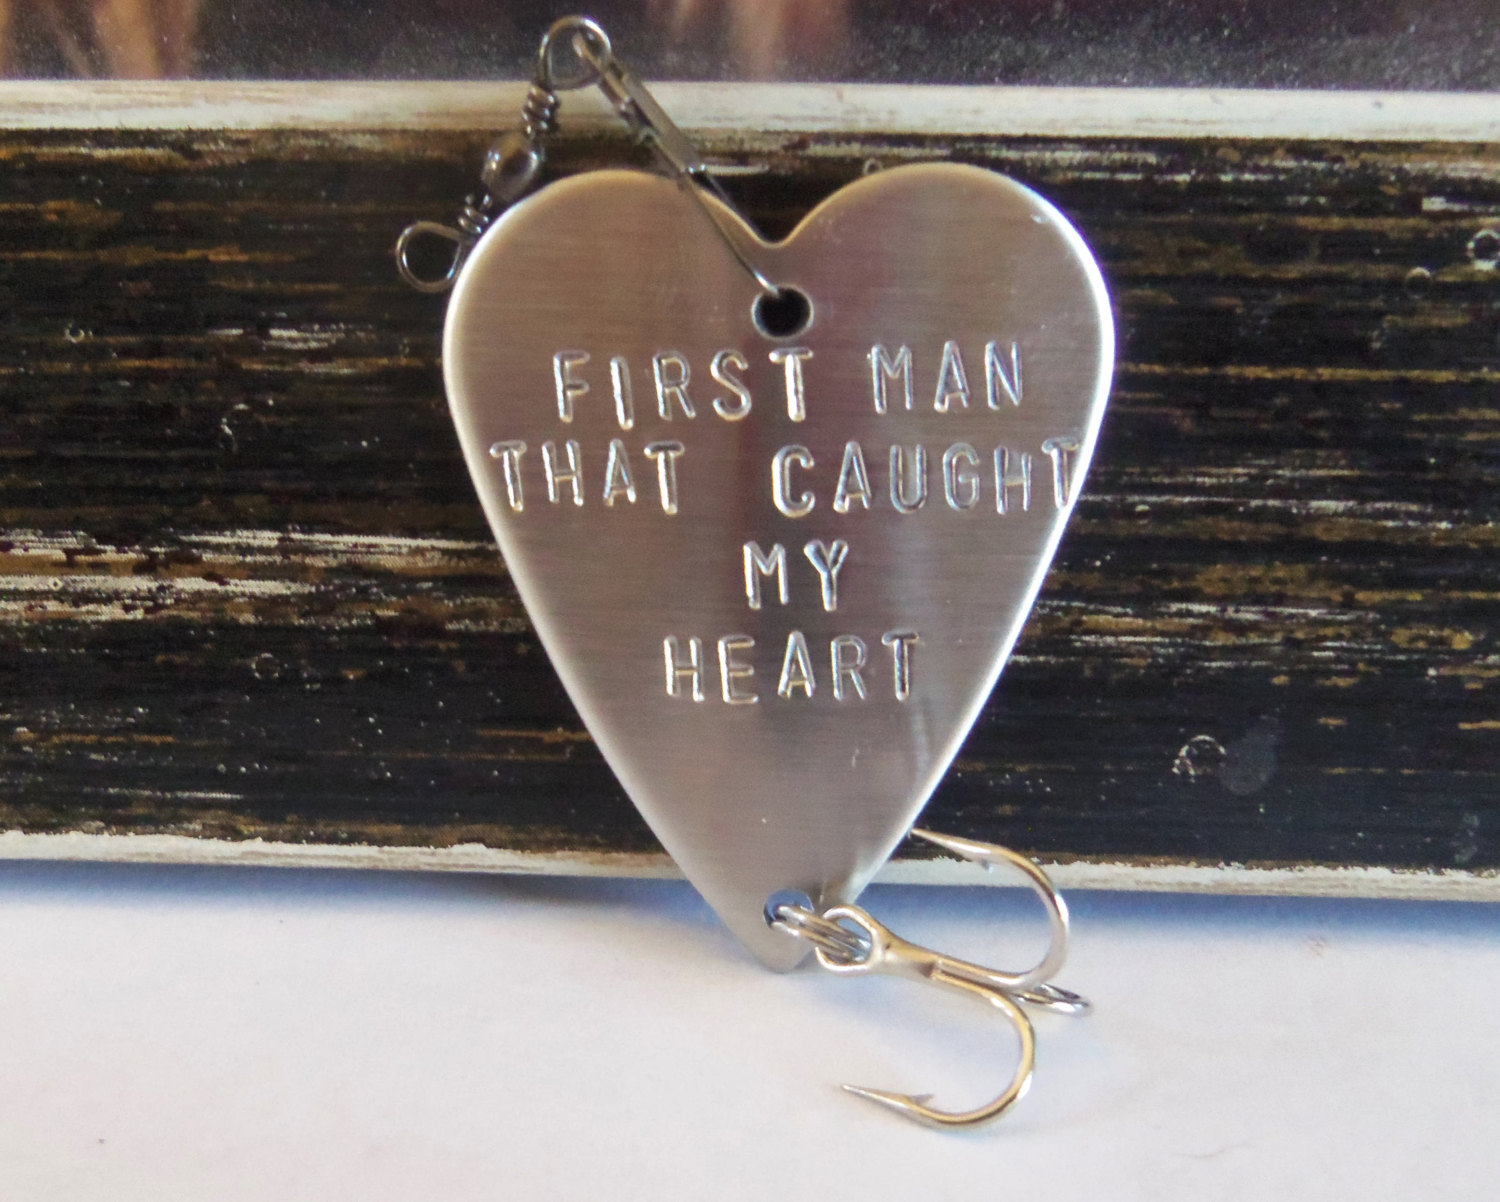 first man that caught my heart fishing lure gift idea | Custom Wedding Fishing Lure